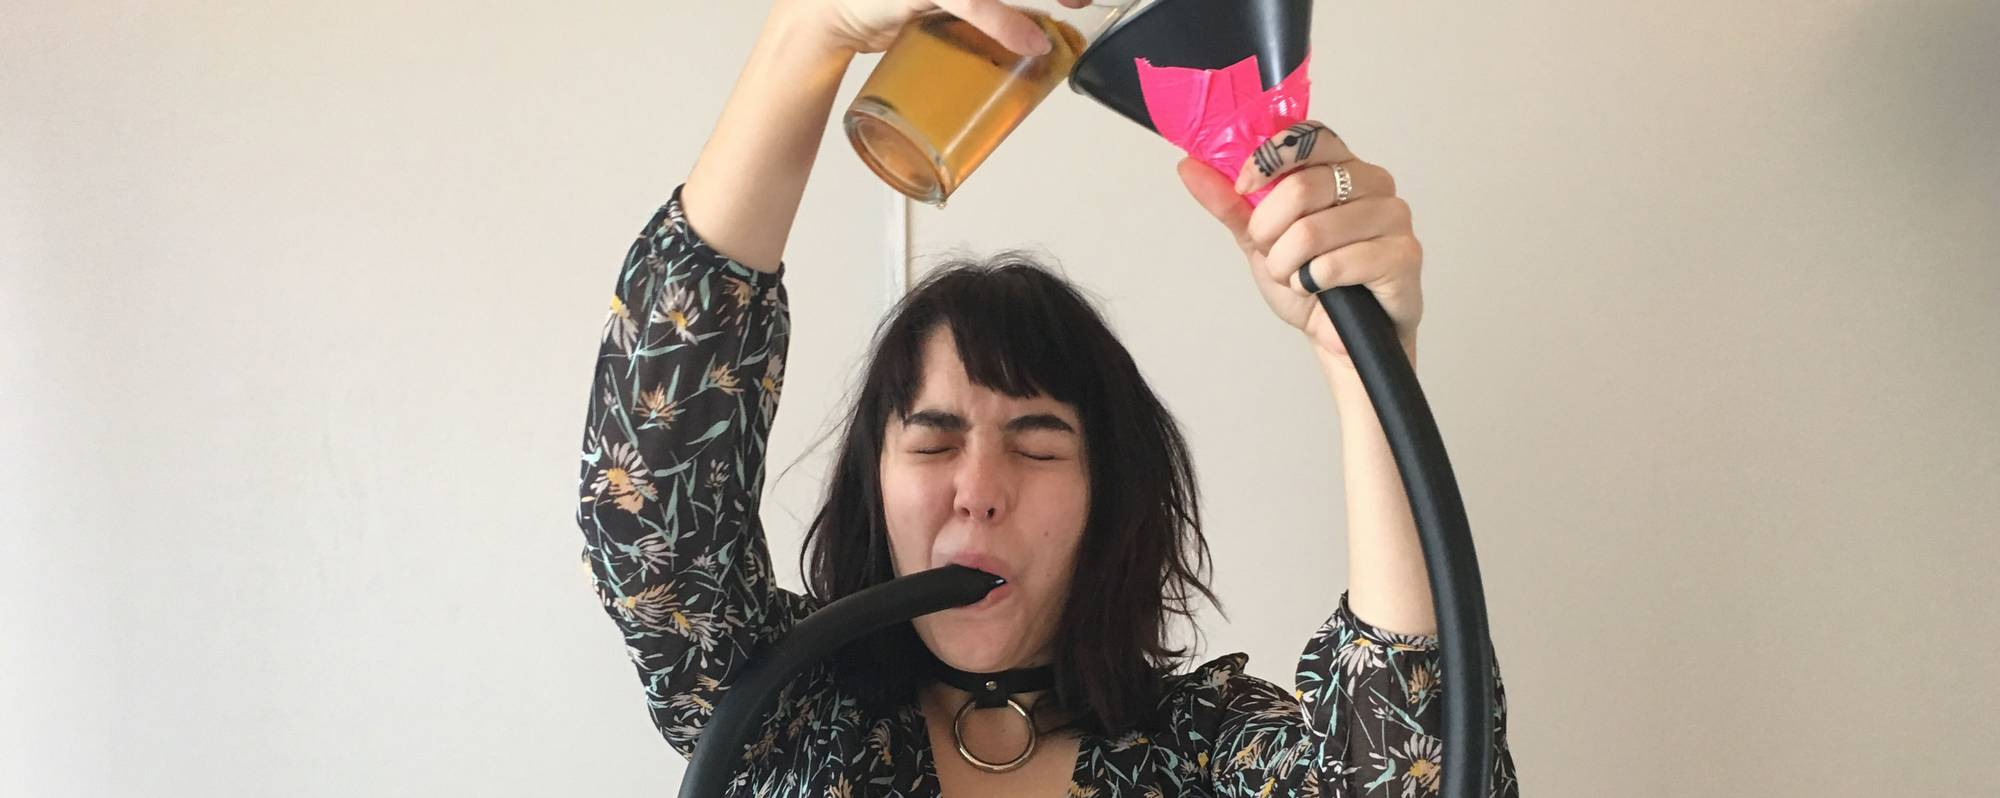 Women Really Can Have It All: I Got High and Drunk by Beer Bonging Weed Beer